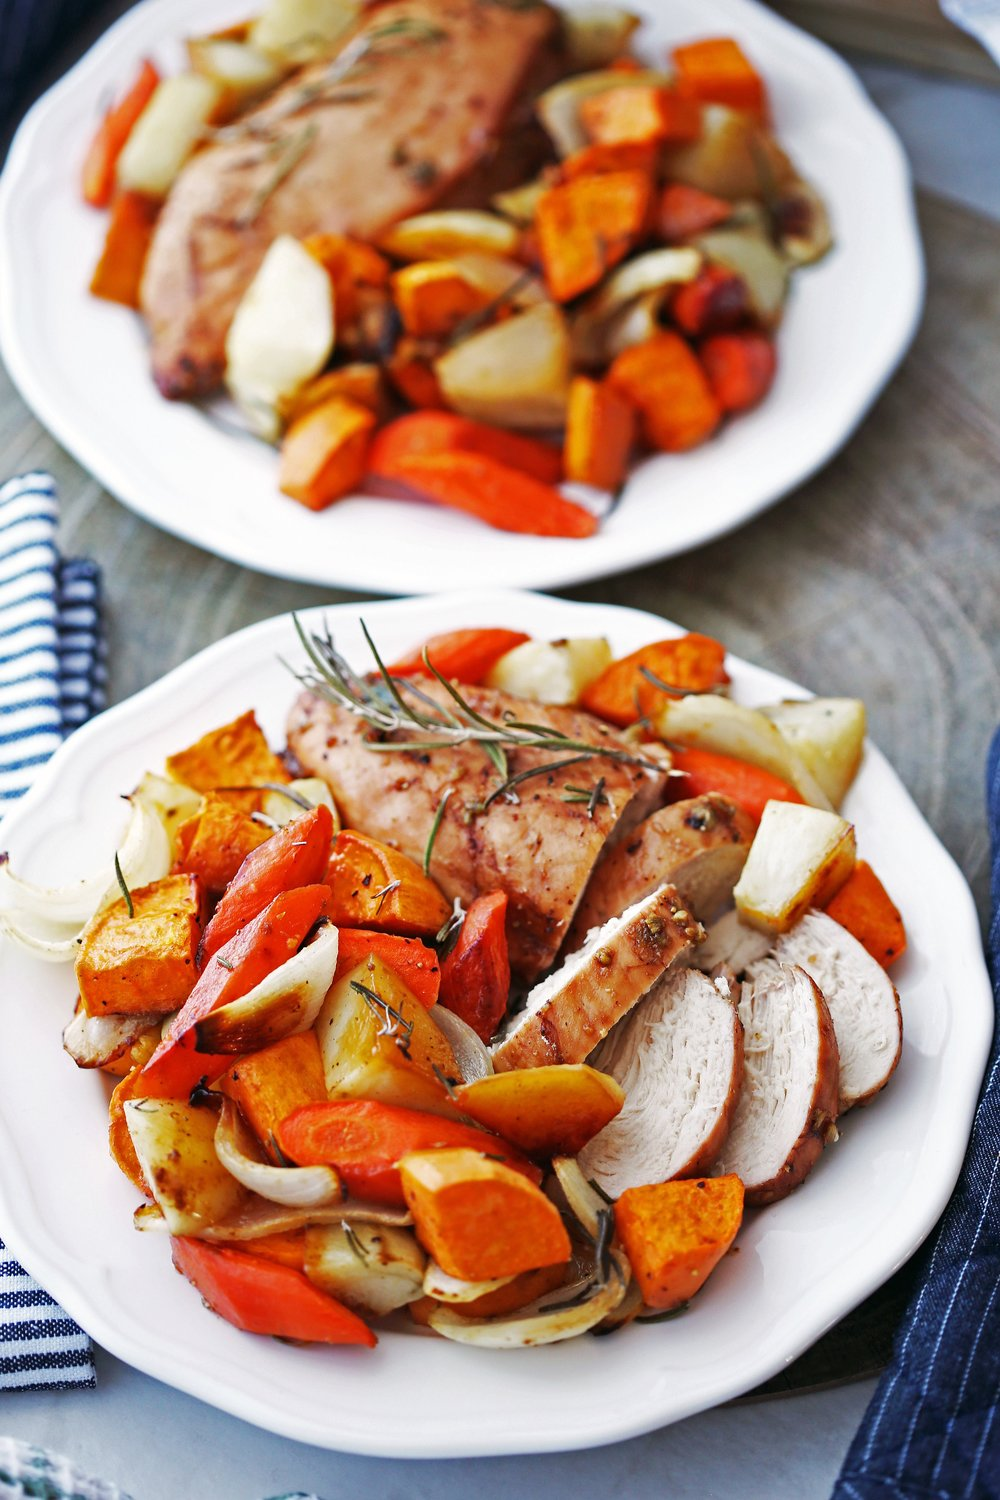 Two white plates containing baked balsamic chicken breasts and roasted vegetables, including potatoes and carrots.